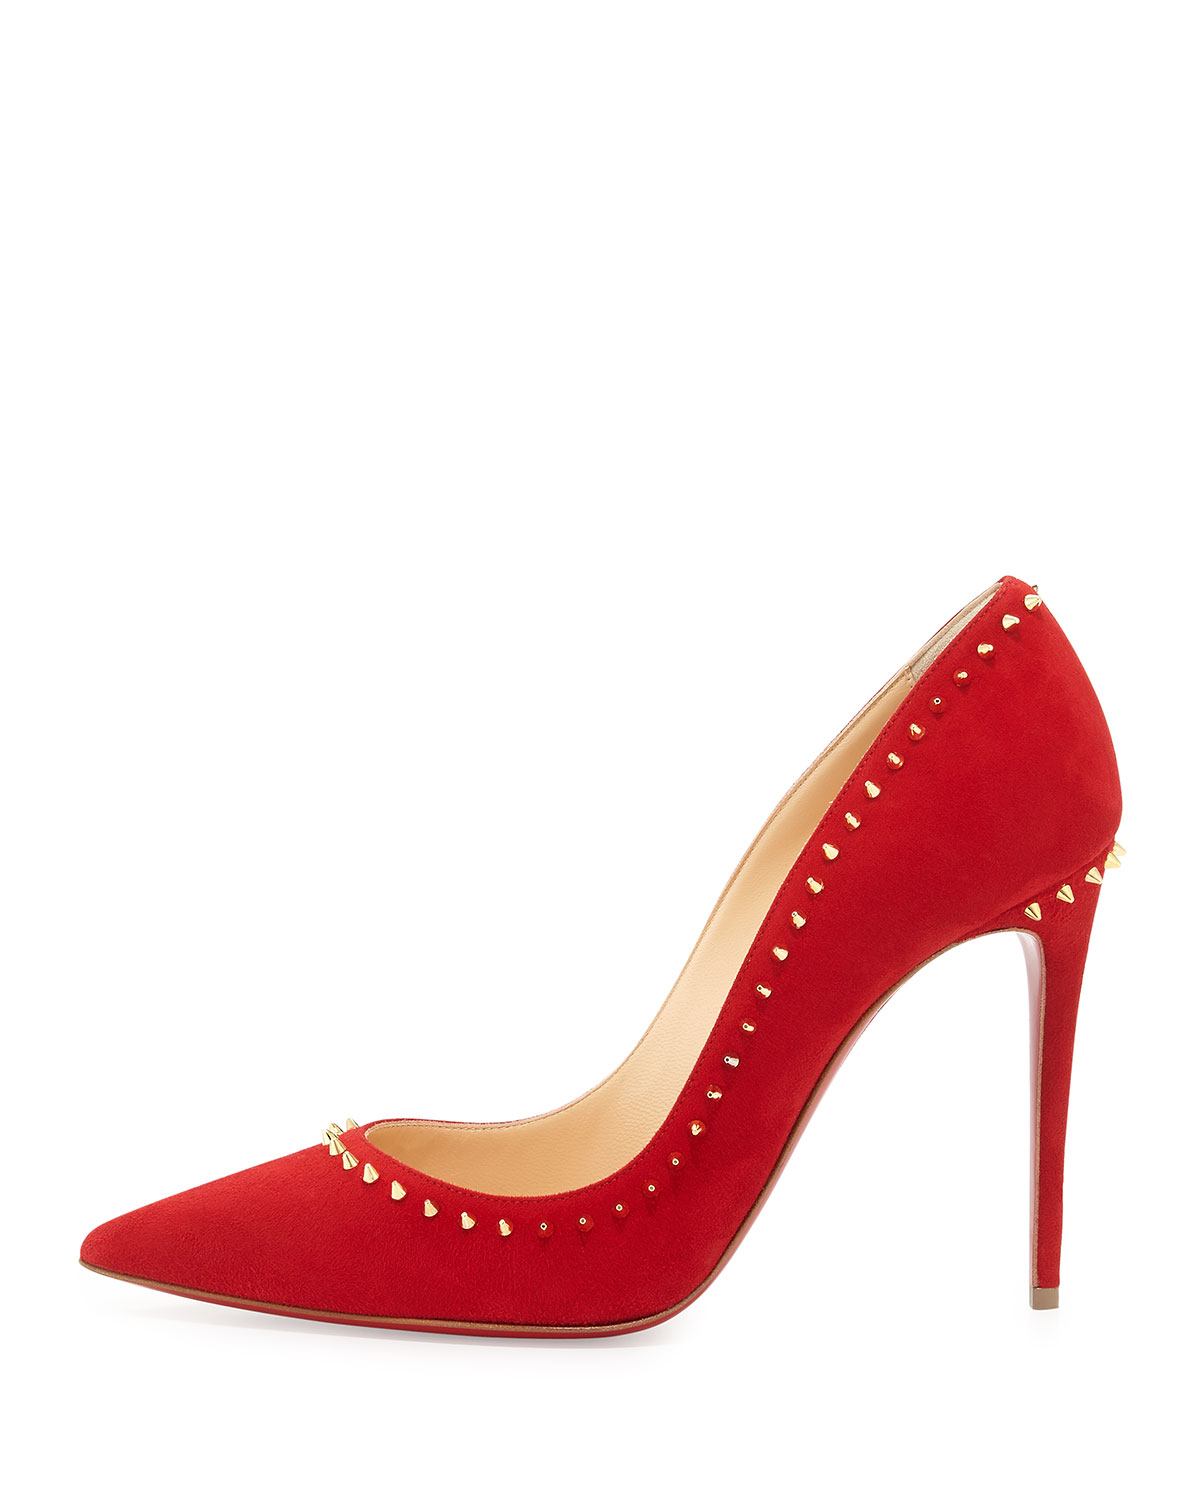 60f2764eb0a ... coupon code lyst christian louboutin anjalina spiked suede red sole  pumps in 79923 d684b